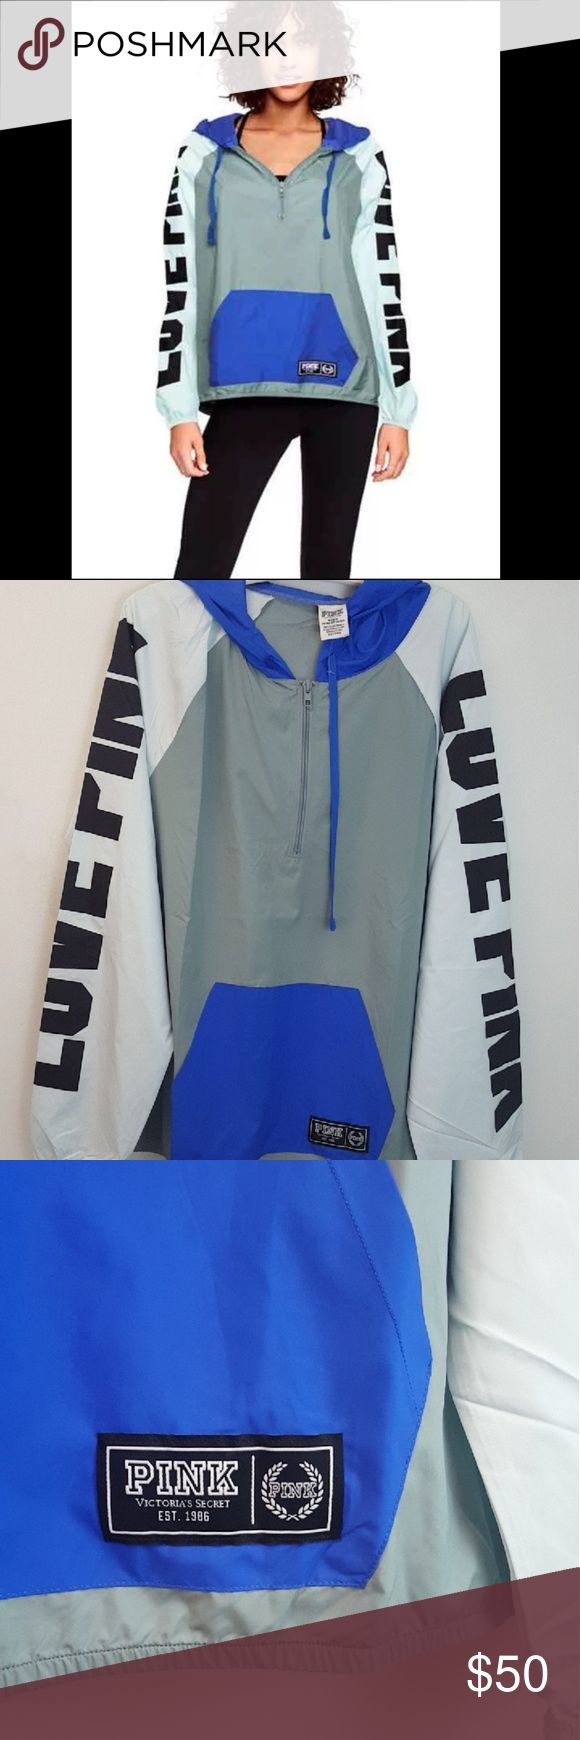 NWOT VS PINK M/L Blue Colorblock Anorak Brand new without tags (online order )from Victoria's Secret PINK! Light and royal blue colorblock with black accents LOVE PINK logos on arms Front kangaroo pocket Quarter zip with drawstring hood Size medium/large PINK Jackets & Coats